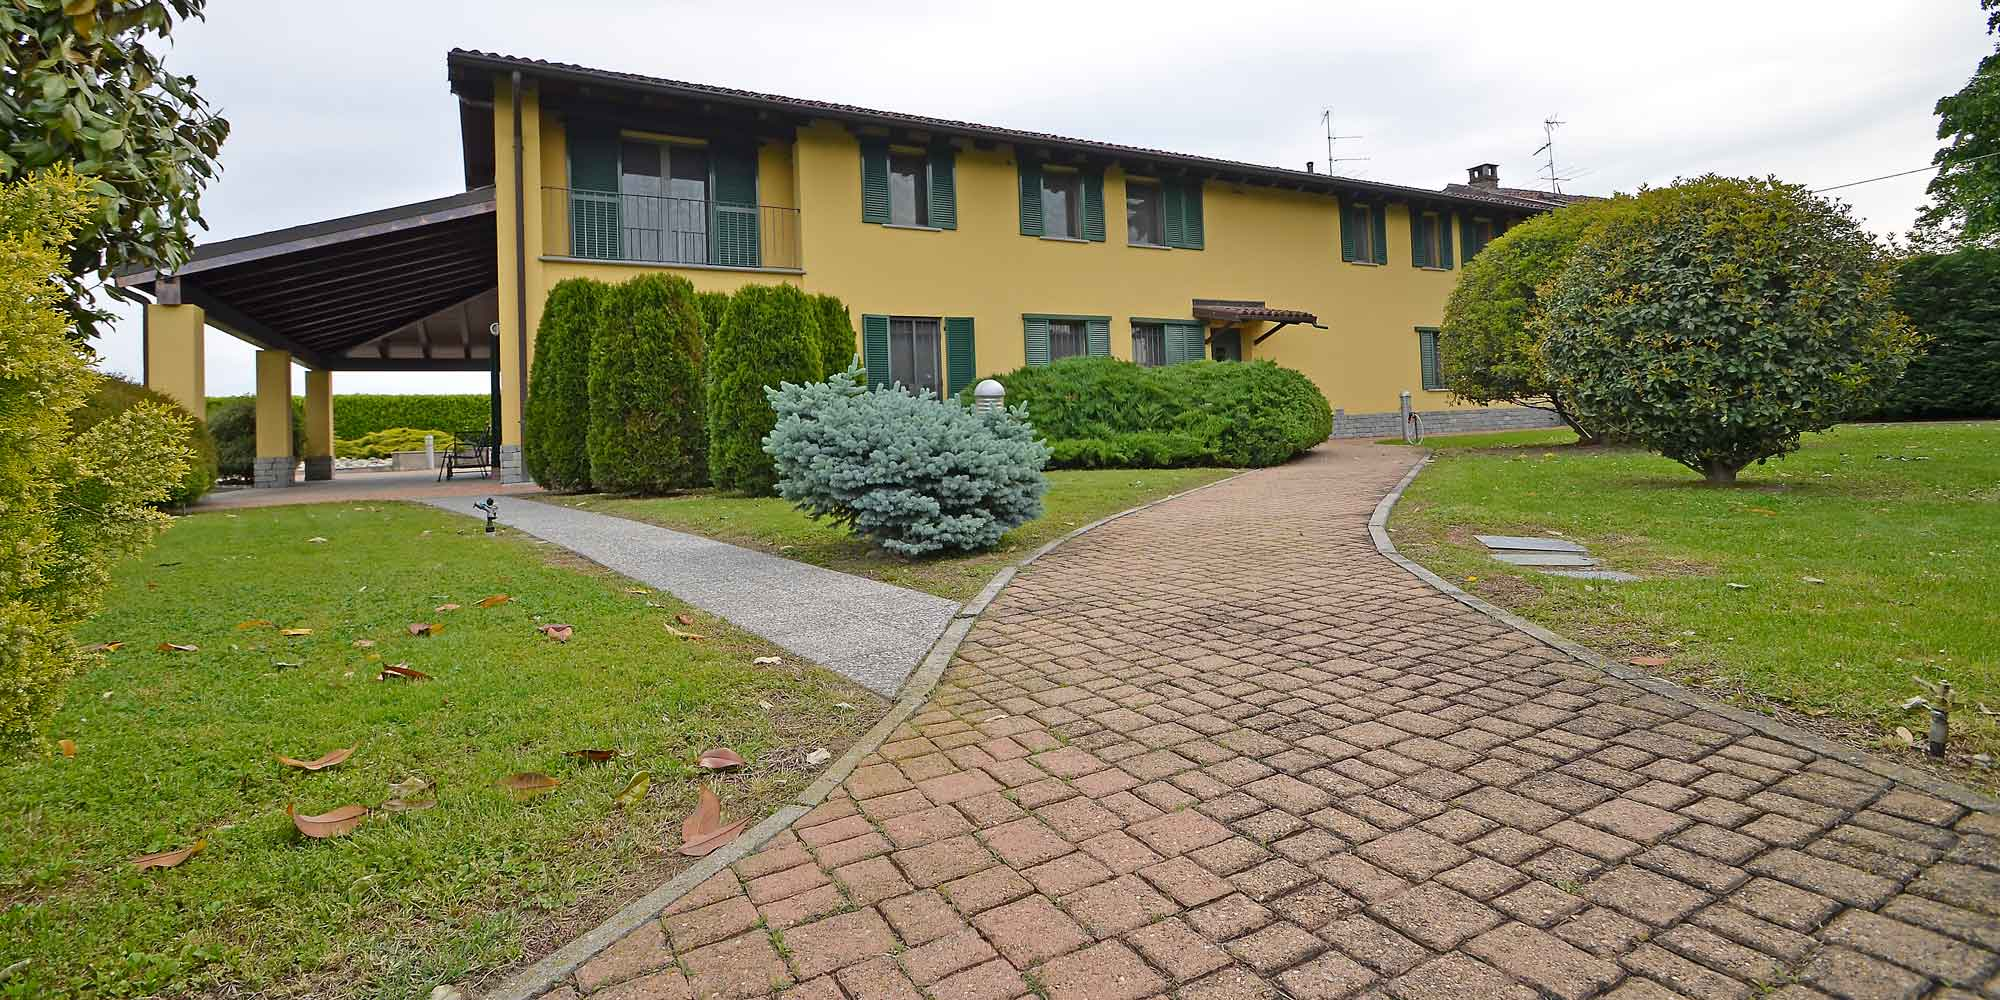 #1341 Detached villa